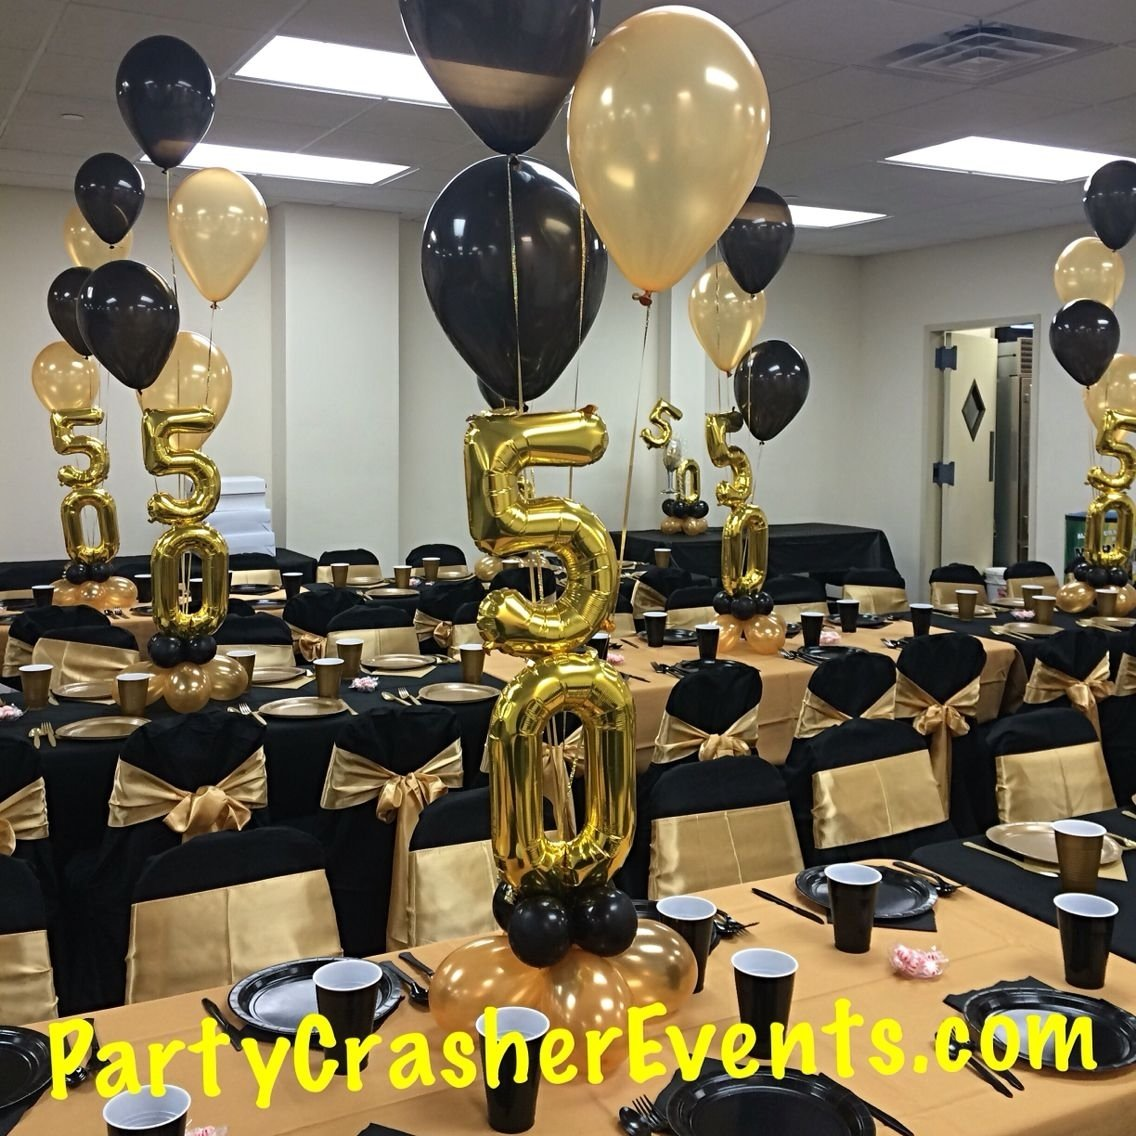 10 Fabulous 50th Birthday Party Centerpiece Ideas 2019